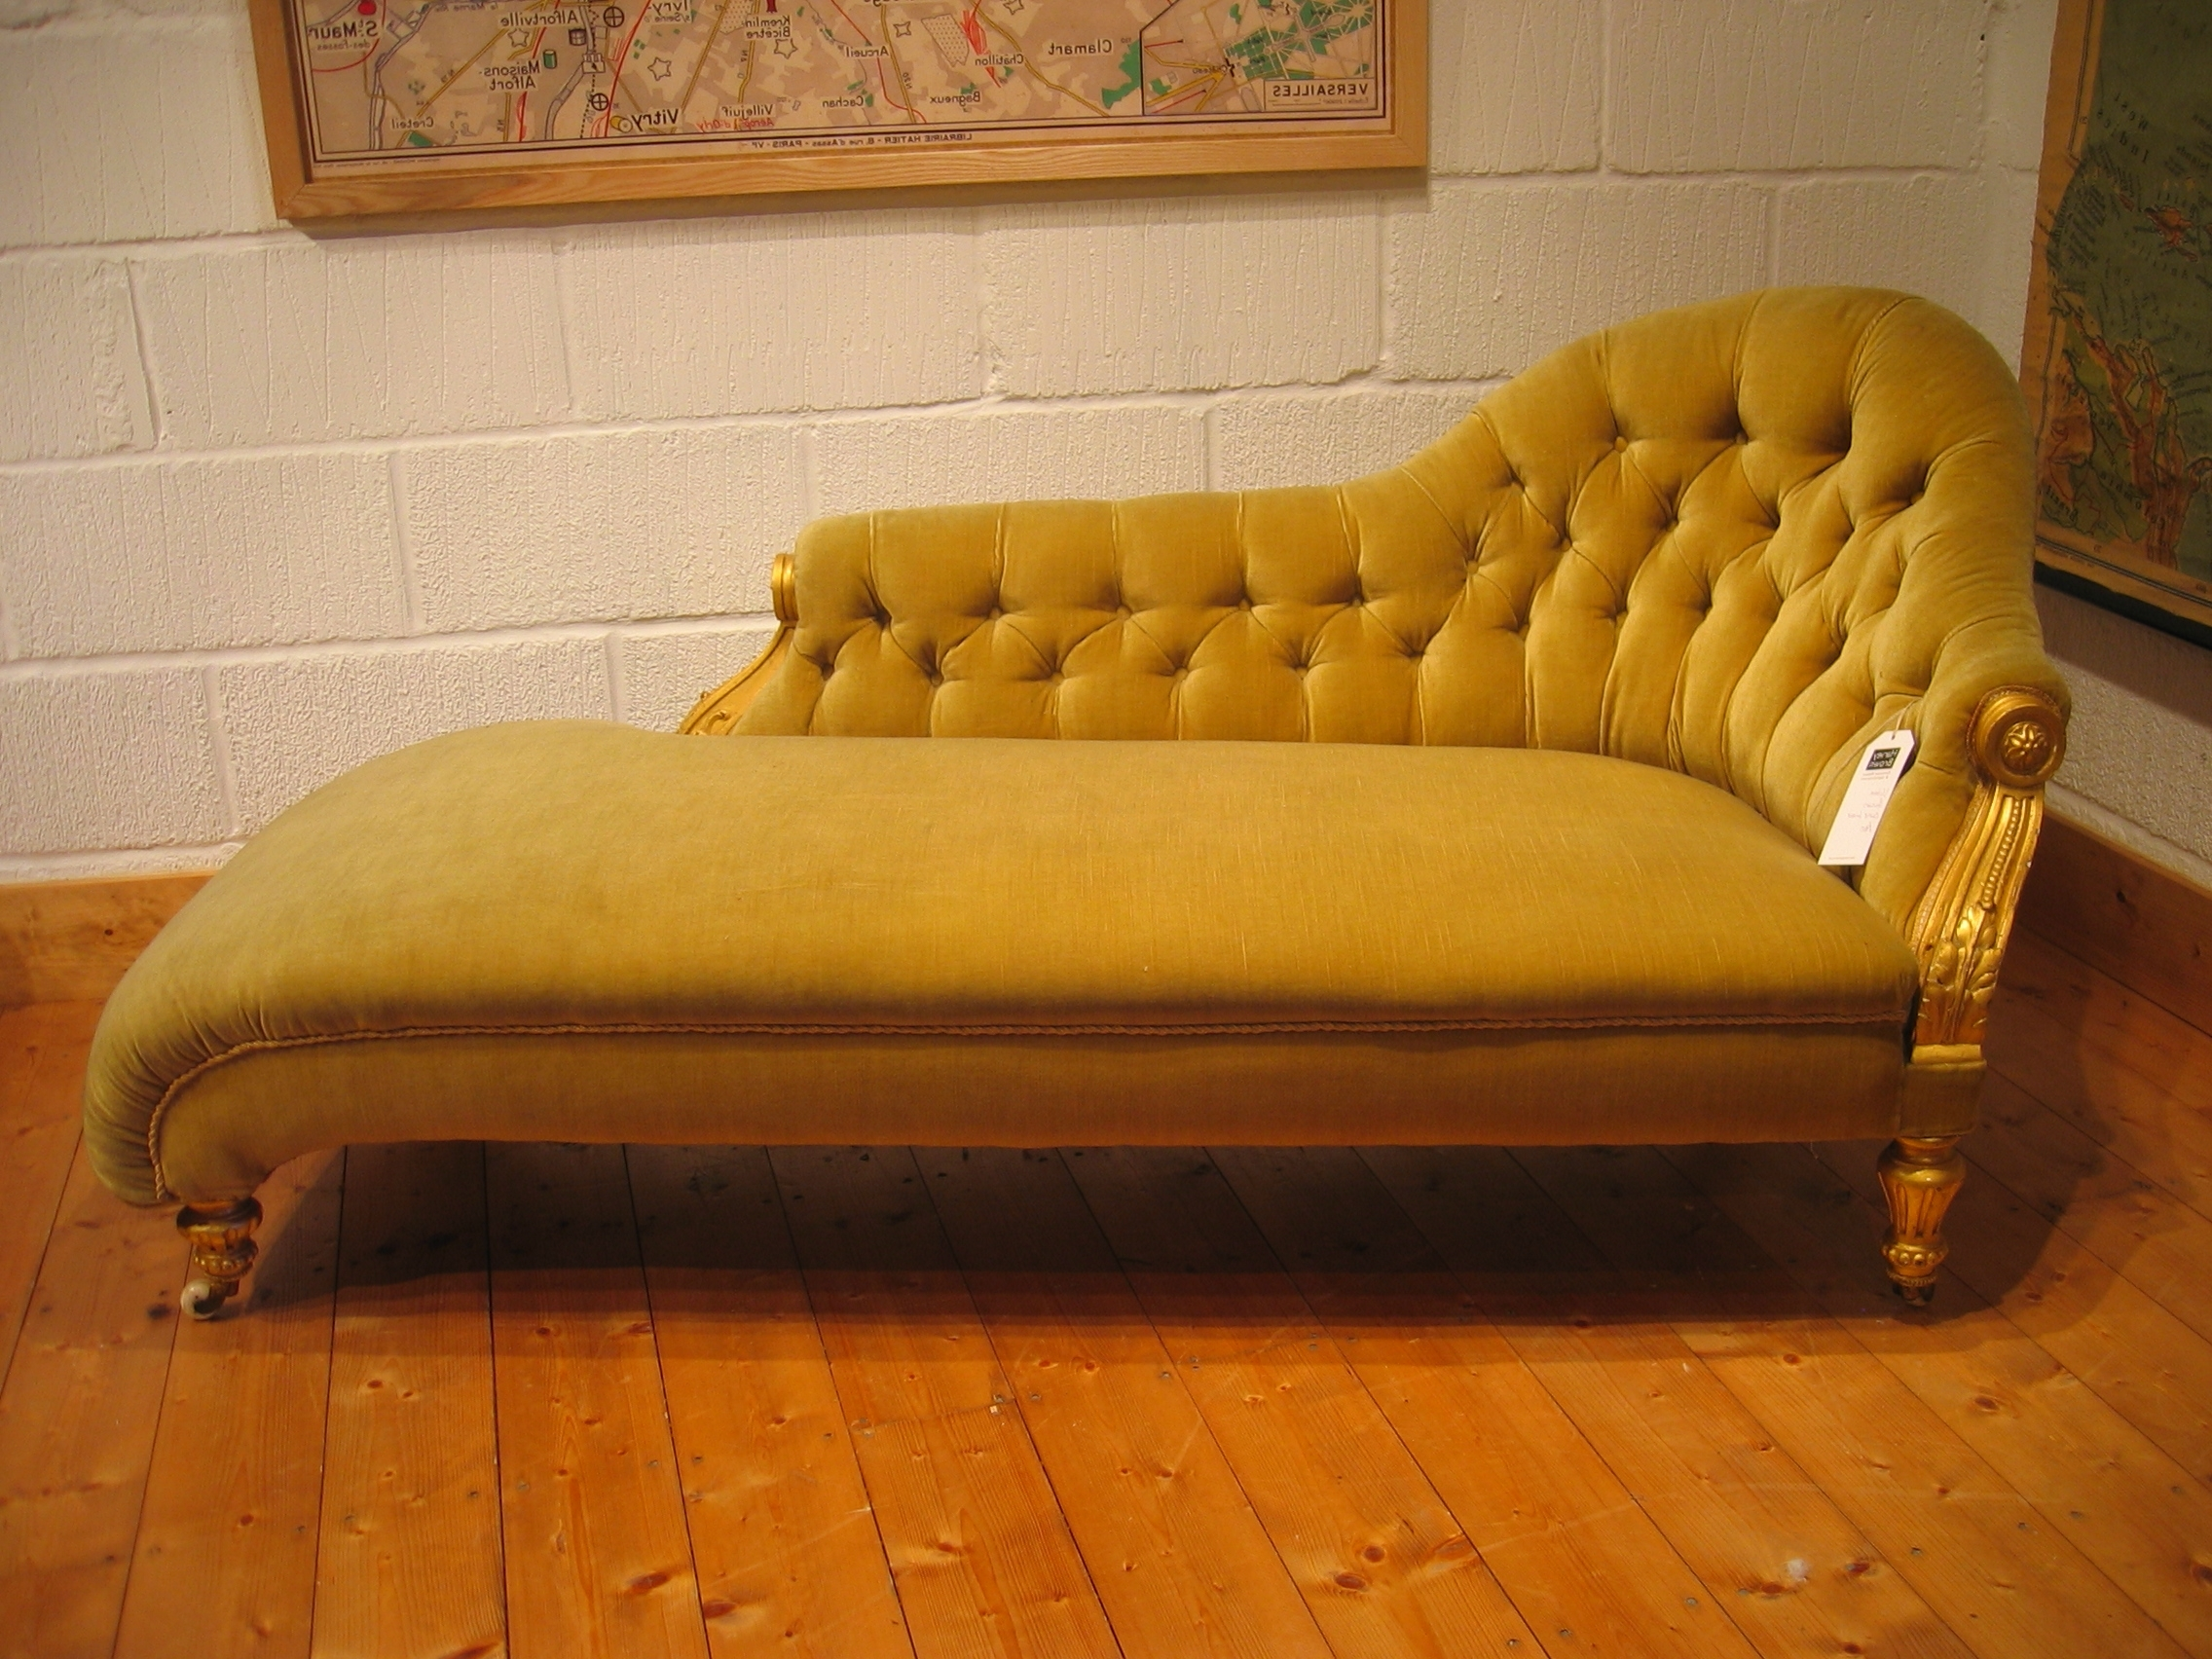 Well Known Yellow Color Antique Victorian Chaise Lounge Sofa Bed With Wooden With Regard To Victorian Chaises (View 14 of 15)